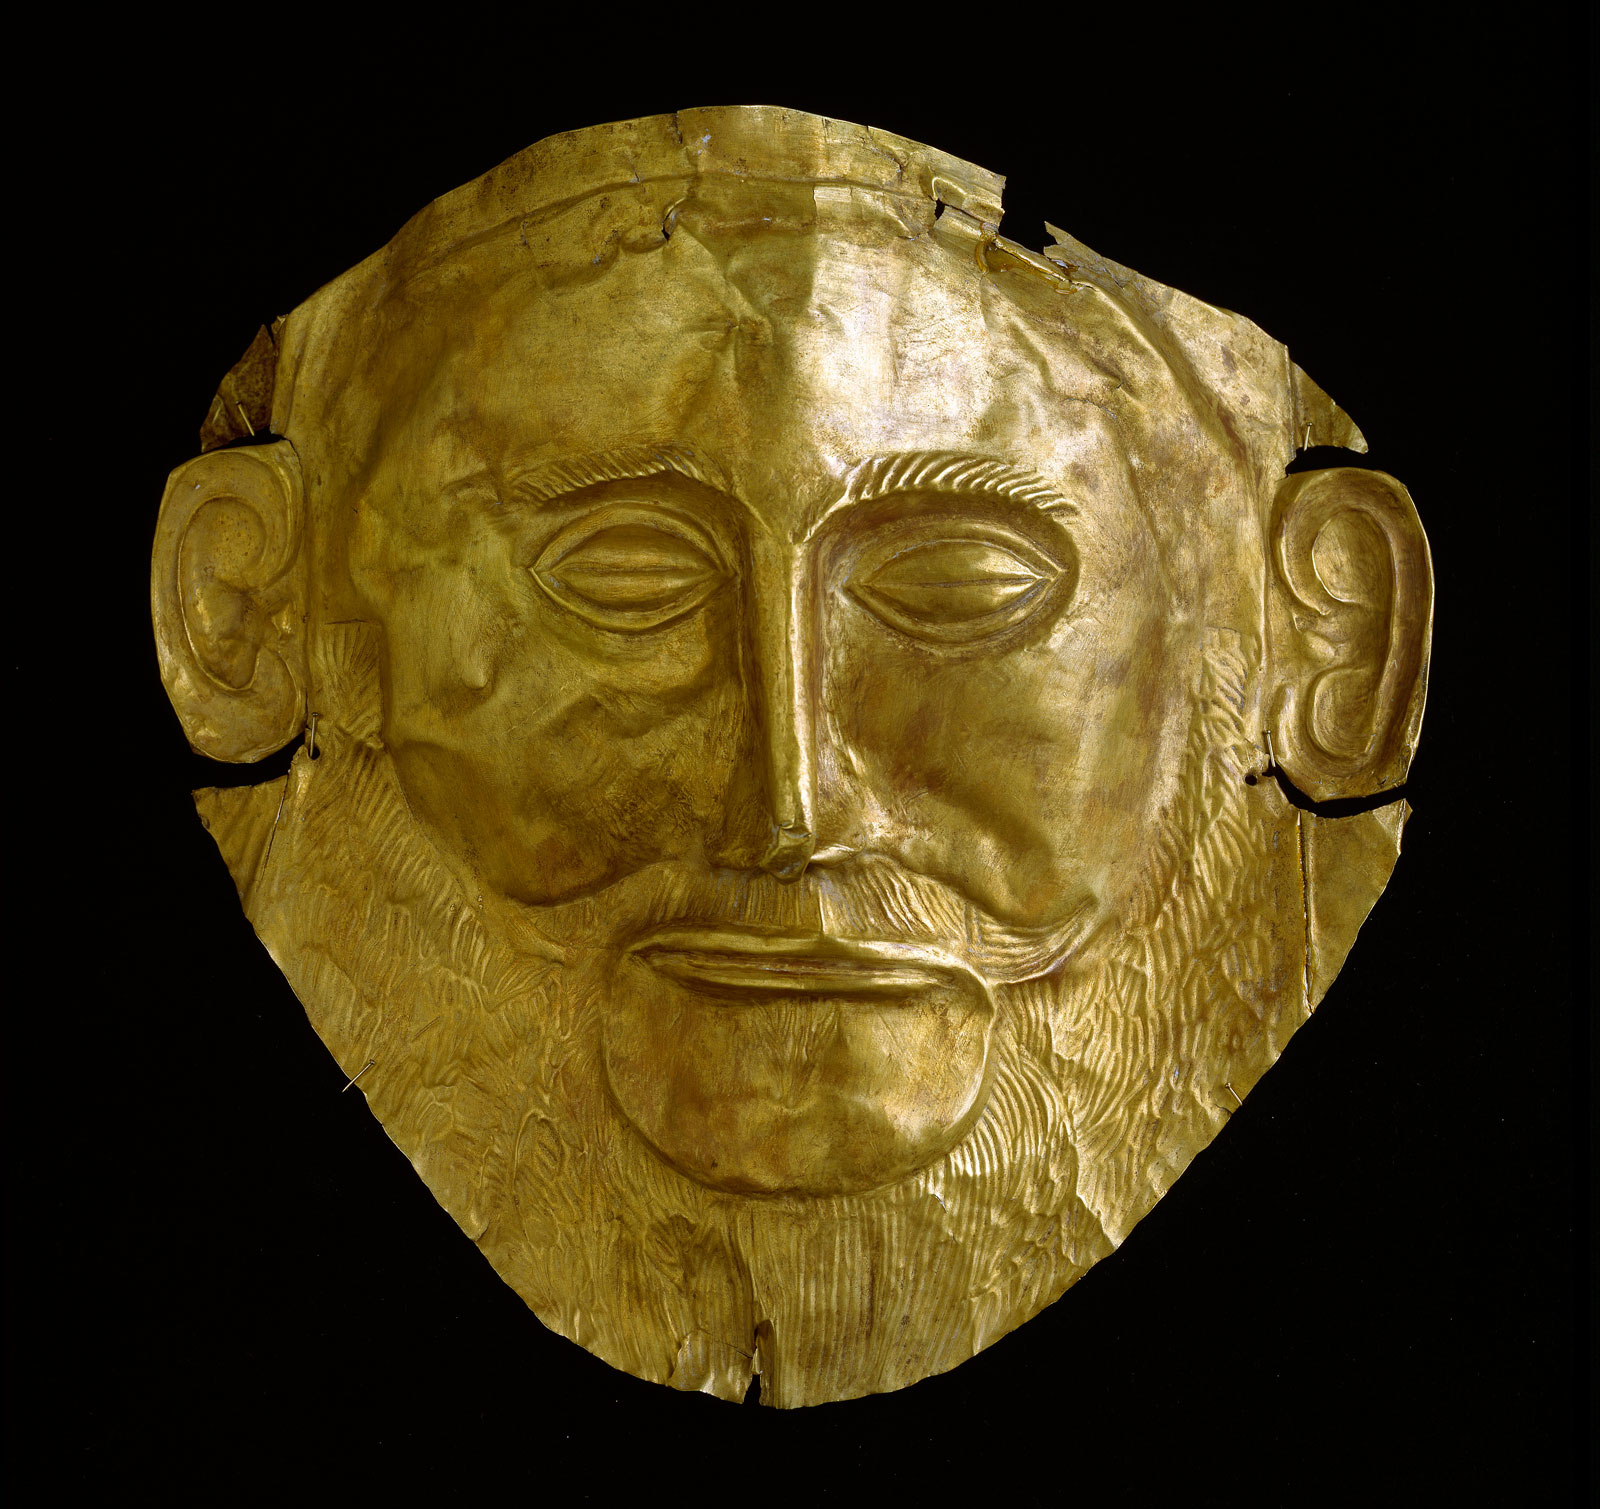 a review of the story of king agamemnon Review: agamemnon, king of argos and commander of the vast greek  expeditionary force that conquered troy after 10 years of fighting,.